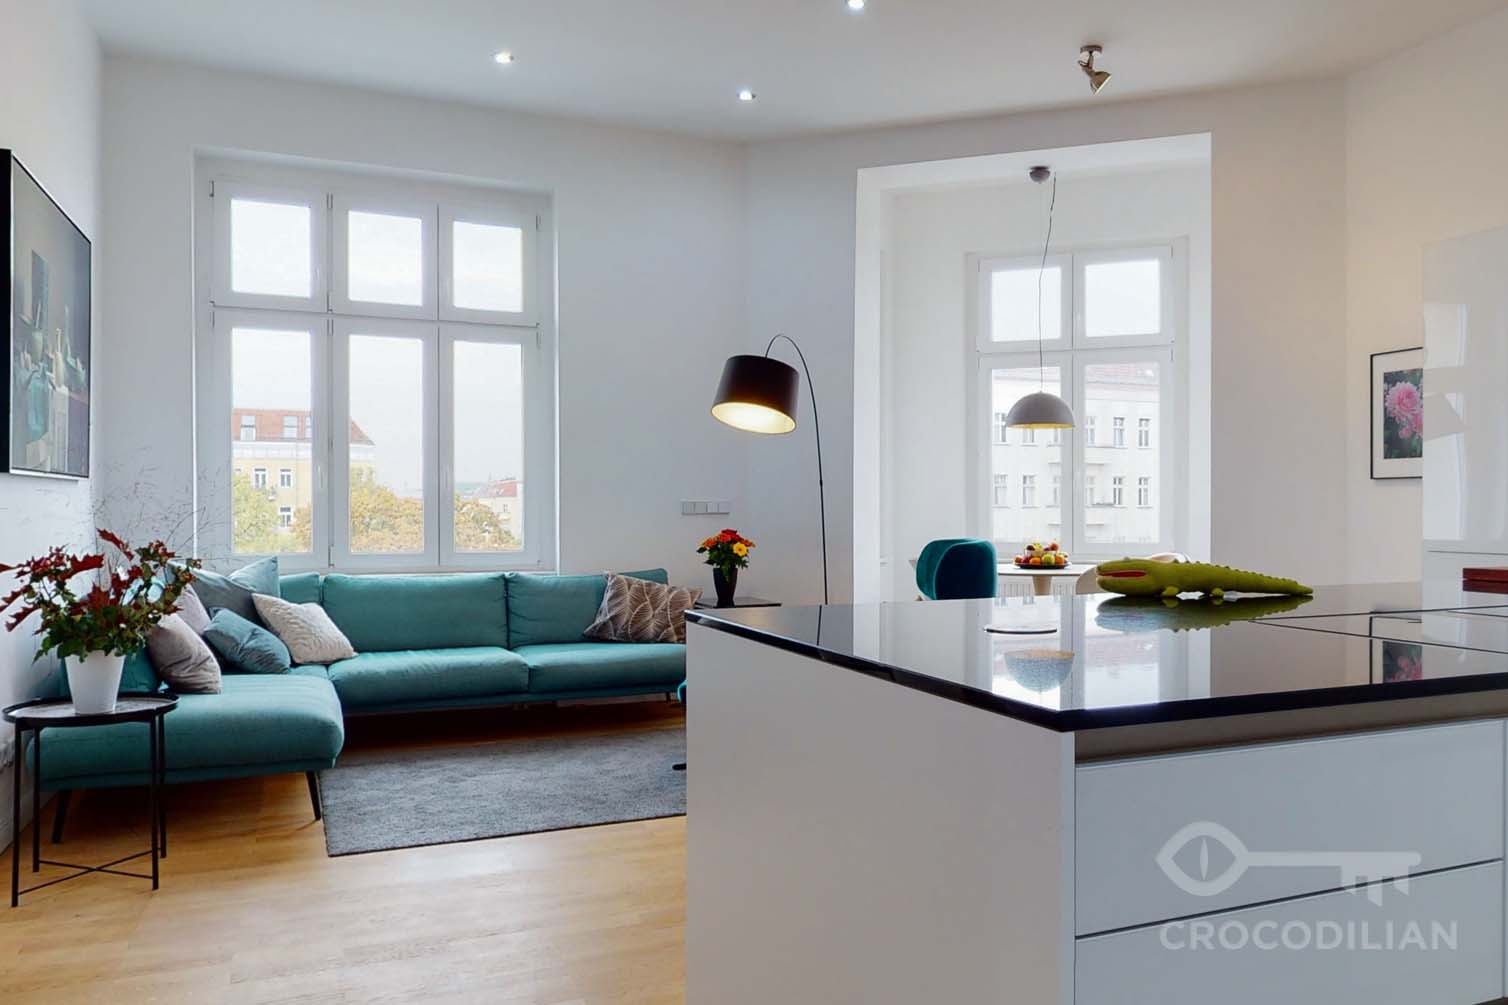 Just Beautiful: 4-Room Flat with 3 Bedrooms